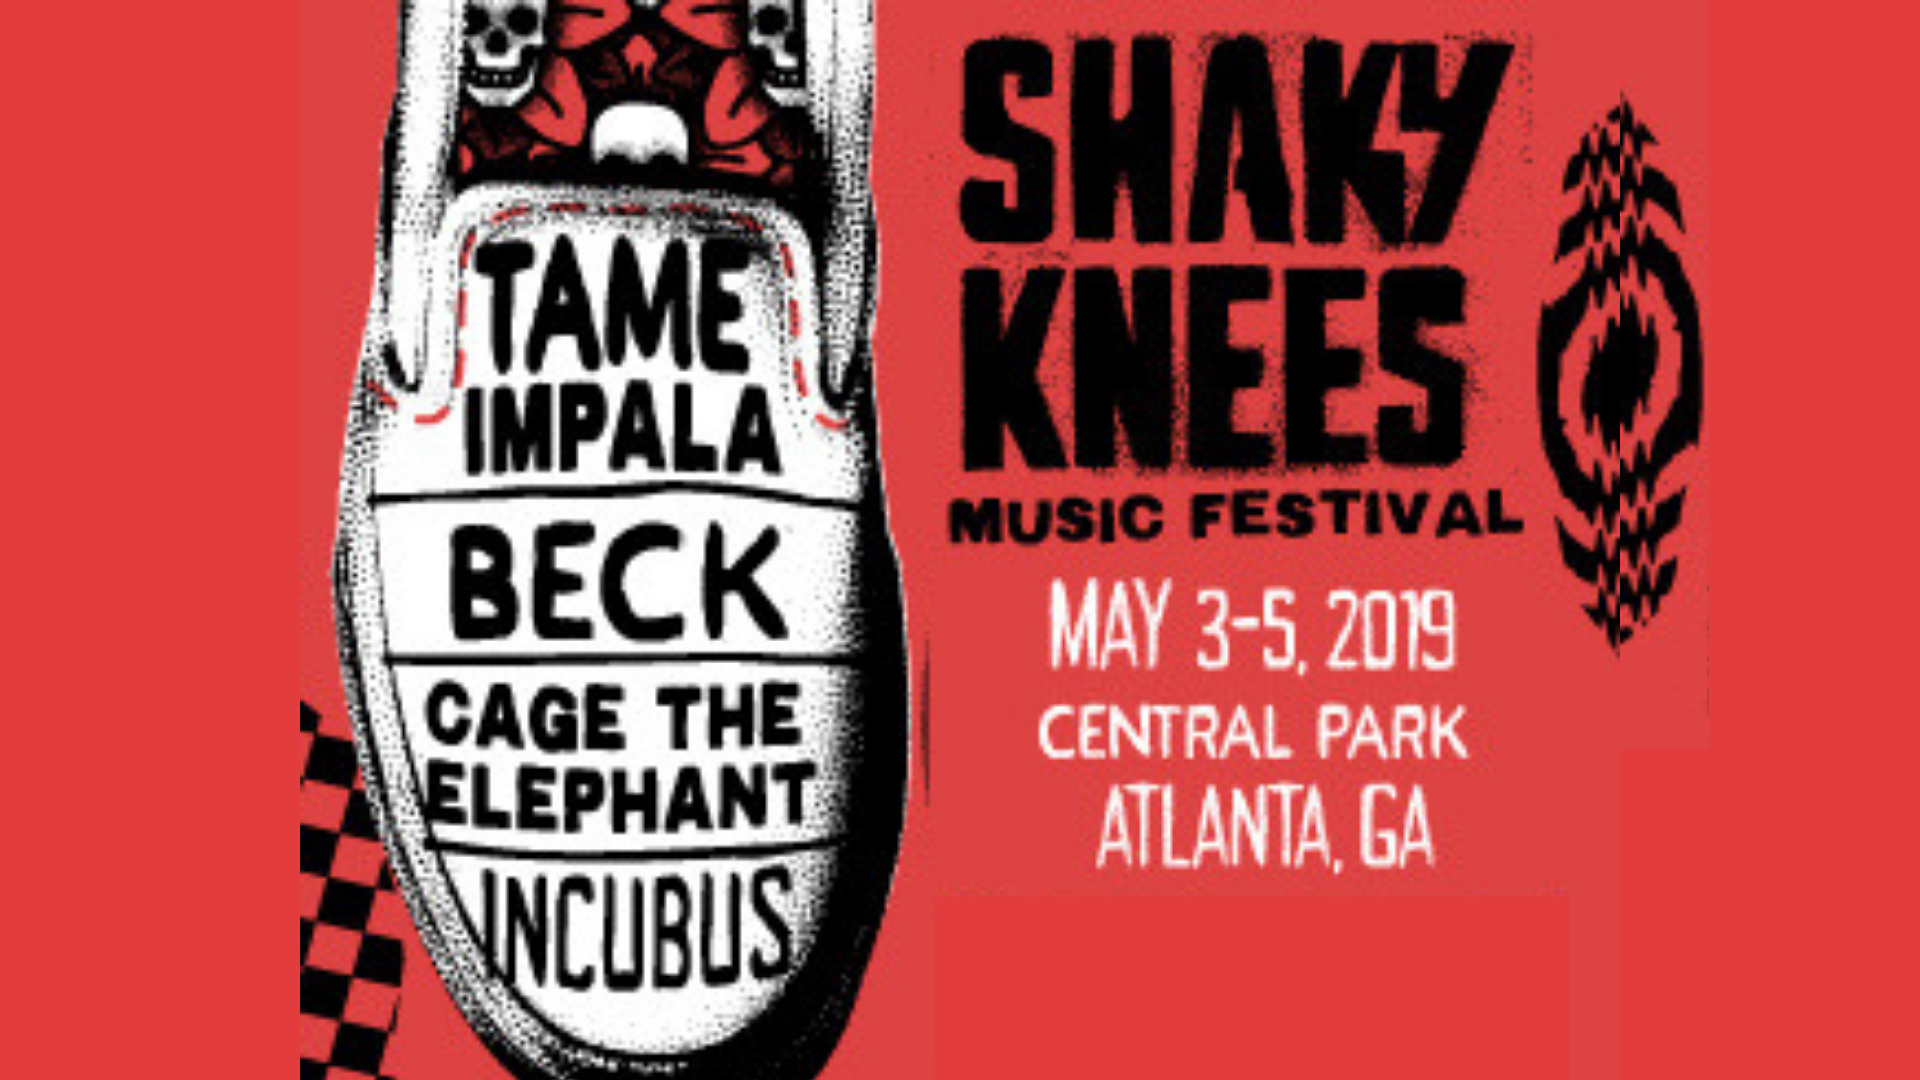 Shaky Knees Freeloading! Two ways to win!